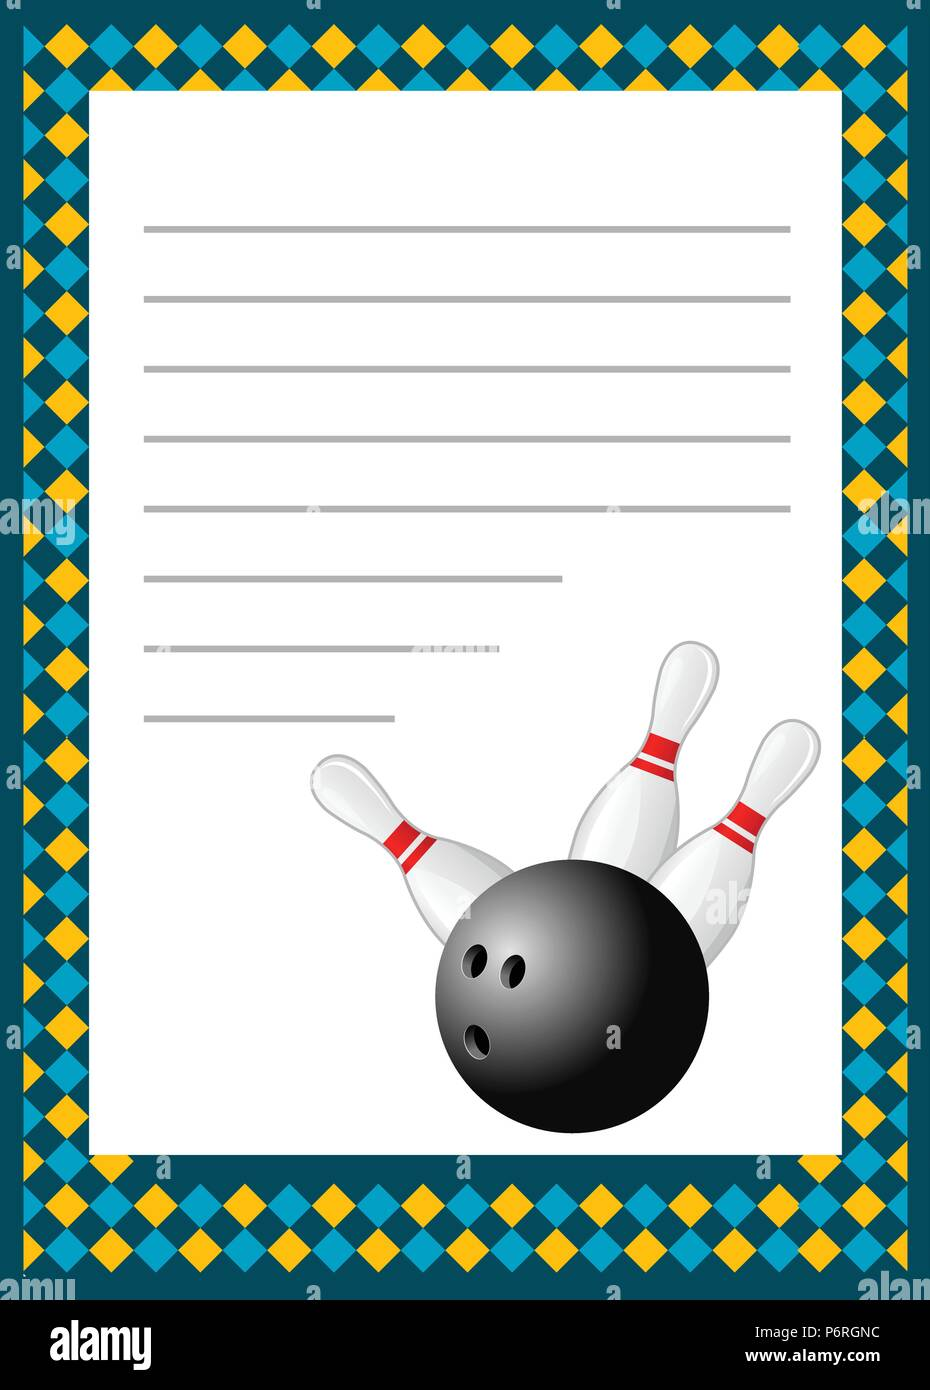 Bowling Tournament Invitation Blank Template Bowls Poster